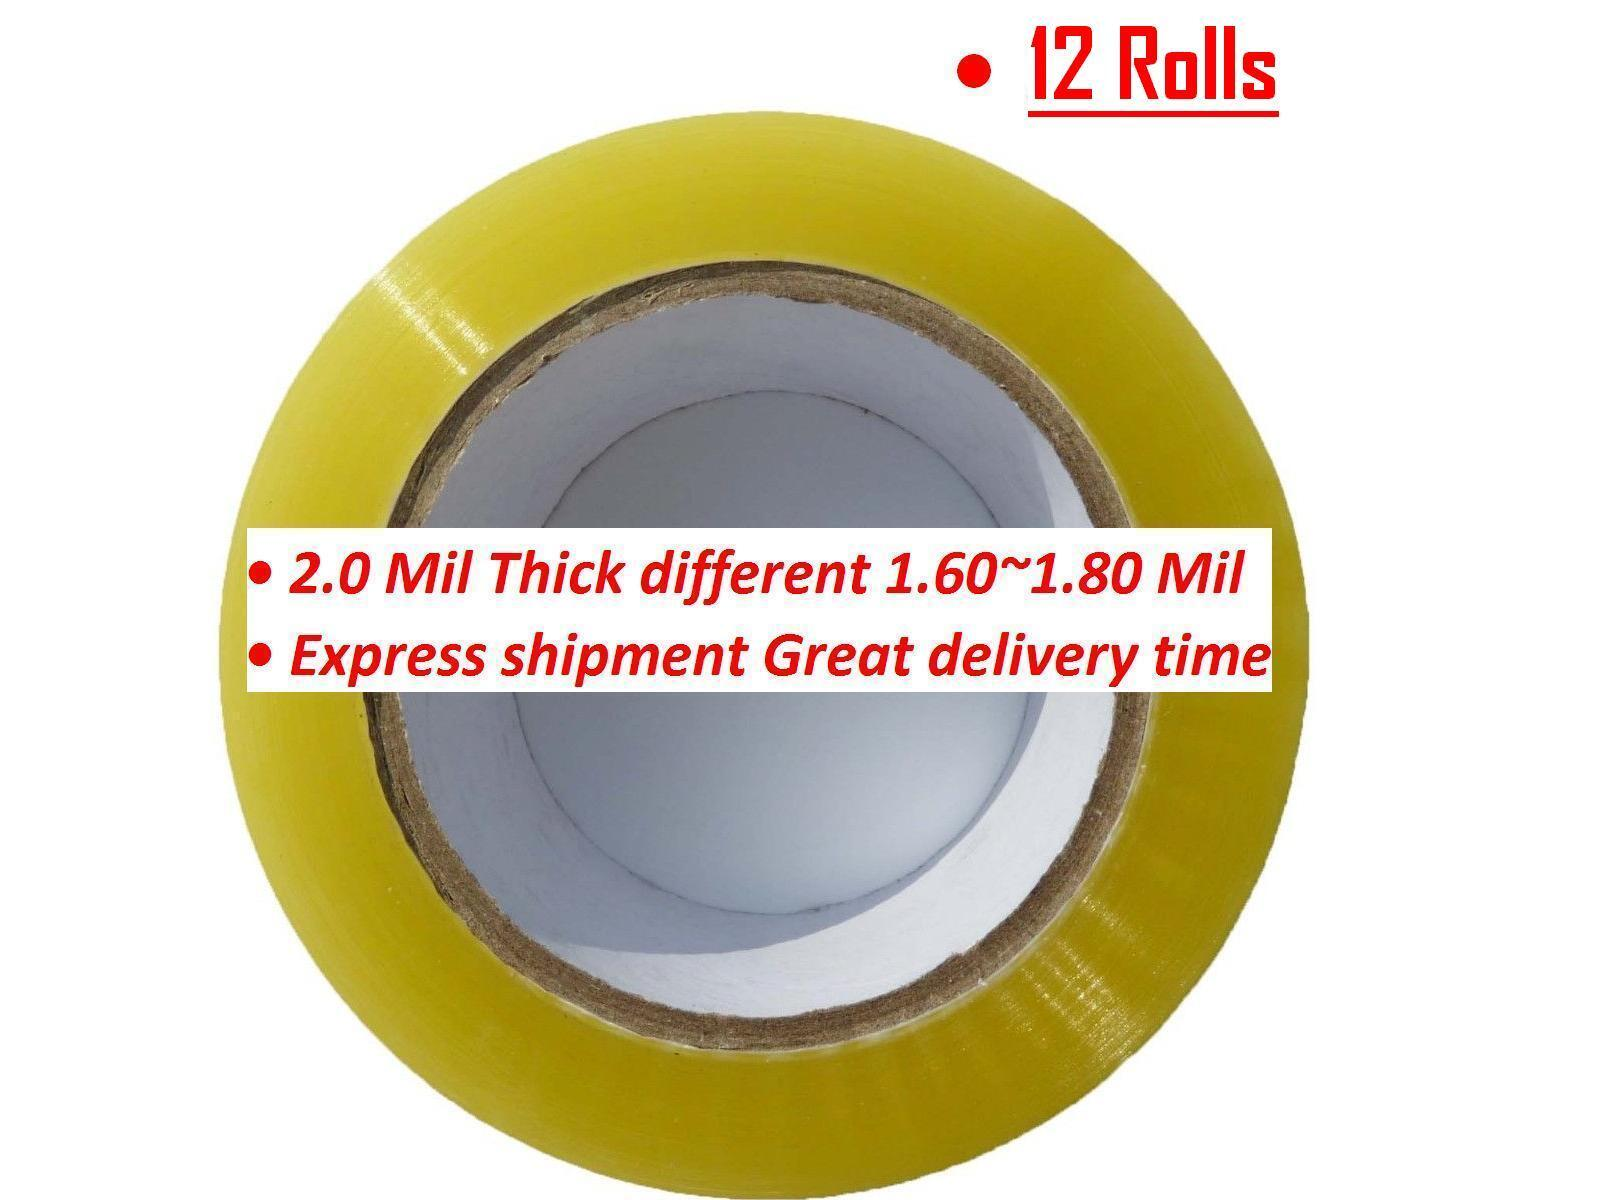 12 Rolls Clear Packing Packaging Carton Sealing Tape 2.0 Mil Thick 2 x 110 Yards